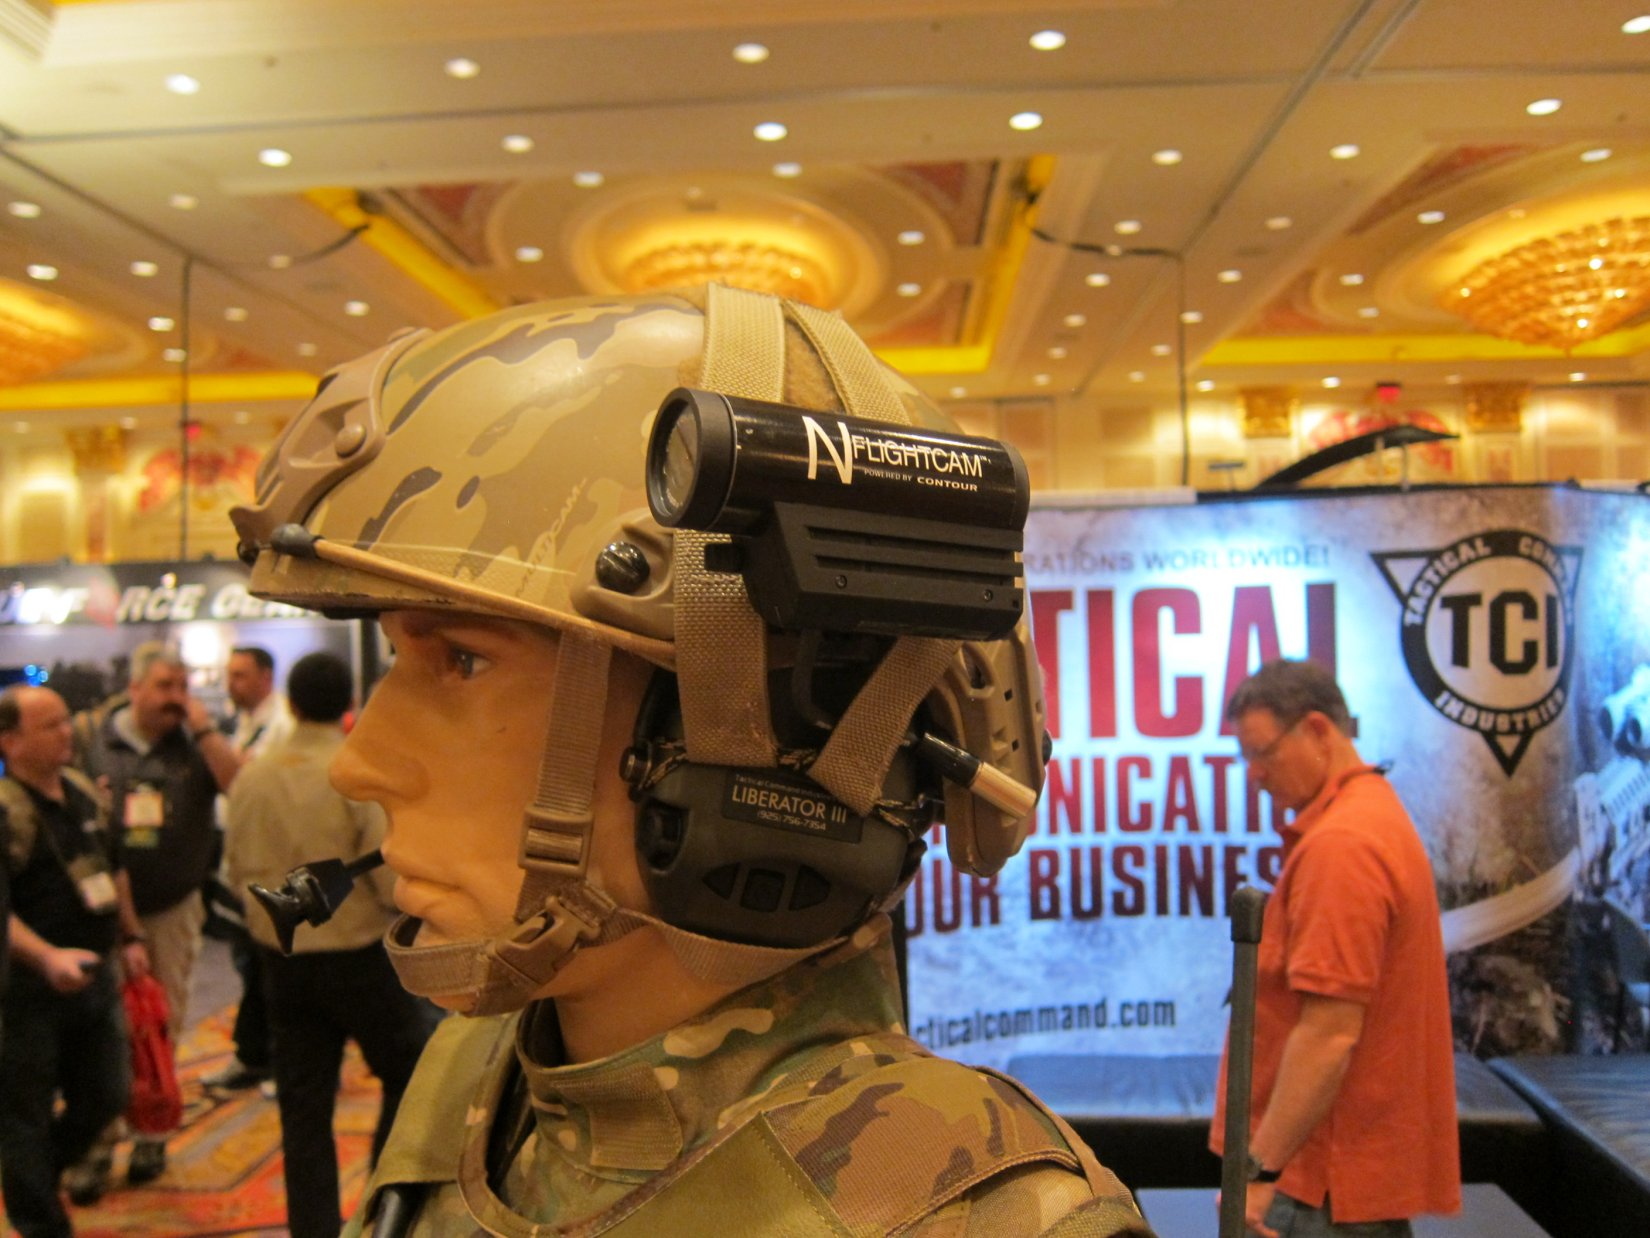 Tactical Command Industries TCI Liberator III Tactical Communications Headset Tactical Comms Headset Ops Core FAST Ballistic Helmet and Contour NFlightCam Helmet Cam SHOT Show 2012 DefenseReview.com DR 18 Tactical Command Industries TCI Liberator III ITJCS   TACP/JTAC Secure Dual Comm Tactical Headset Suite/Digital Hearing Protection System with Ambidextrous Push To Talk (PTT) Button and Radio Sharing: Modular Tactical Communications Headset for Military Special Operations Forces (SOF) (Video!)